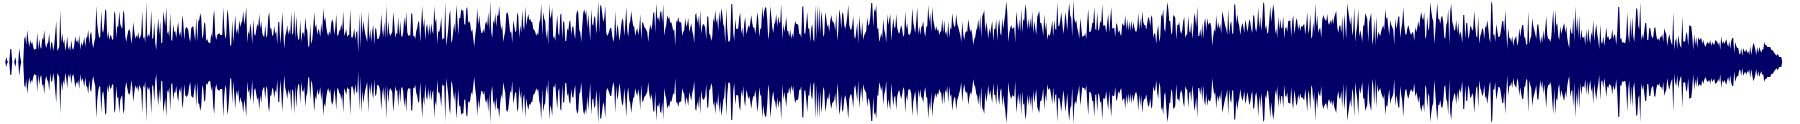 waveform of track #78707